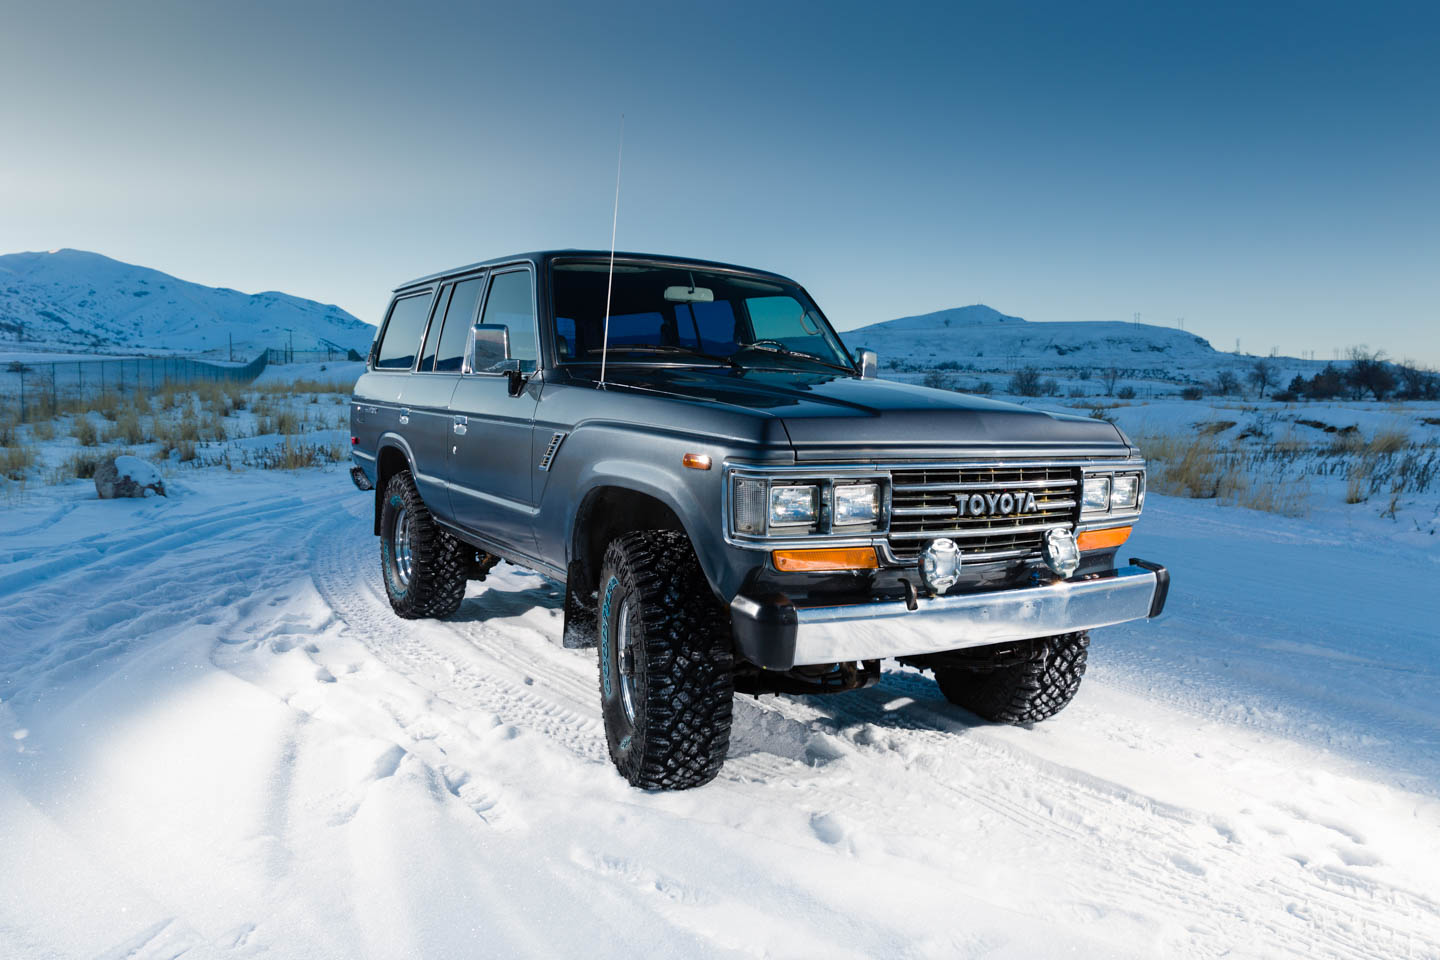 Toyota Land Cruiser J60 in the snow